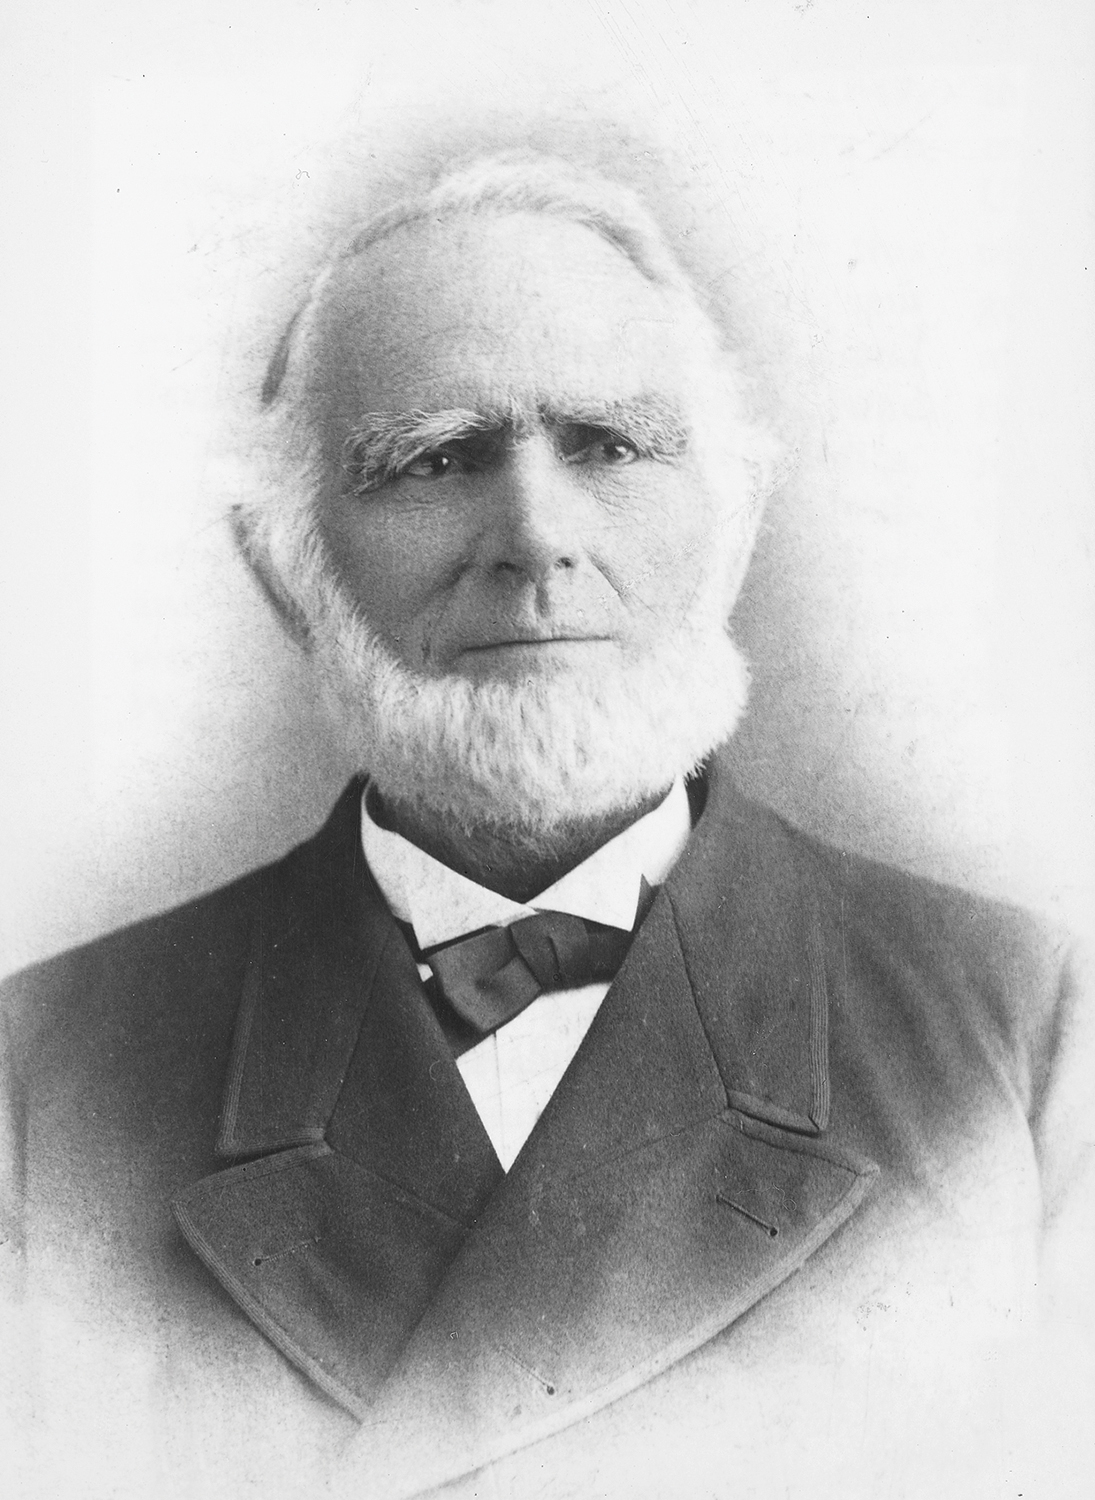 portrait of Abraham Smoot, early champion of Brigham Young Academy